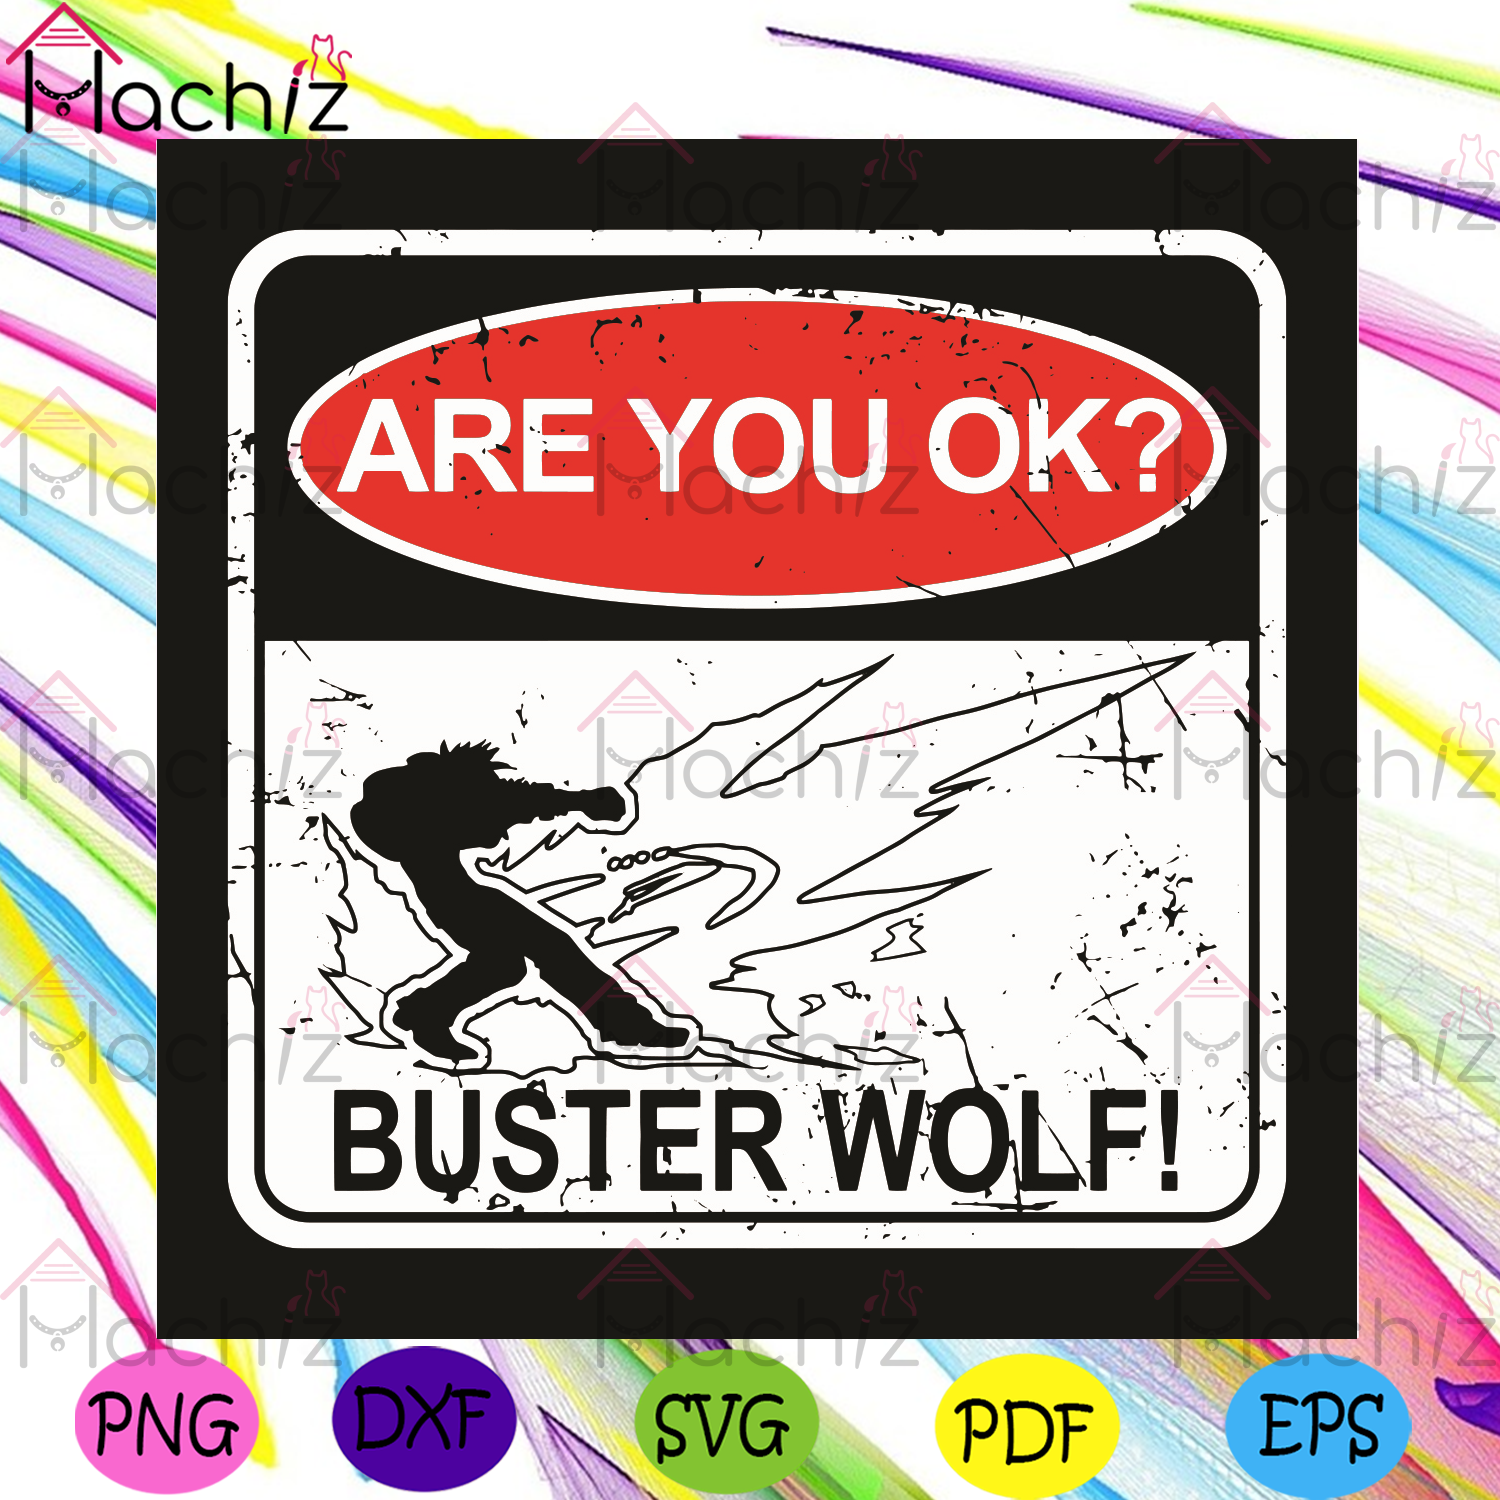 Are You Ok Buster Wolf Svg, Trending Svg, Buster Wolf Svg, Buster Bones Svg, Buster Wolf Game Svg, Gaming Svg, Gamers Svg, Super Smash Bros Svg, Smash Svg, Buster Wolf Lovers Svg, Terry Bogard Svg, Buster Wolf Characters Svg